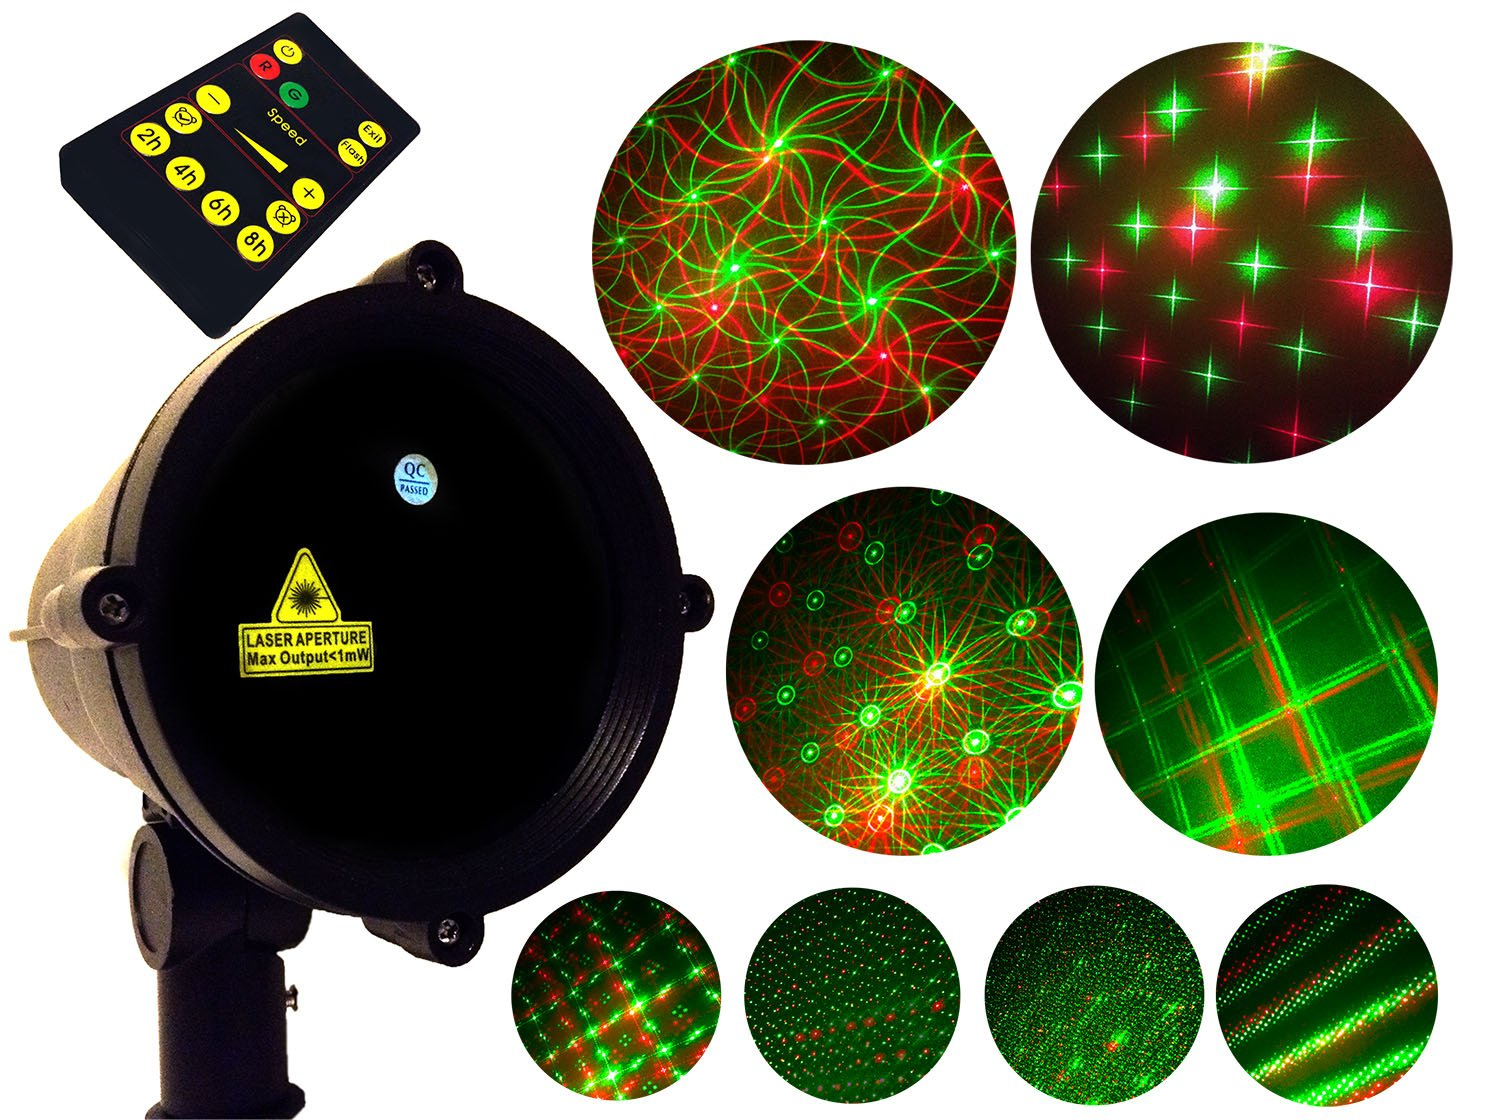 8 Pattern Motion Christmas Holiday Outdoor Landscape Laser Light Show Projector Moving Red Green Holiday Stars With Remote Control by Santa's Choice